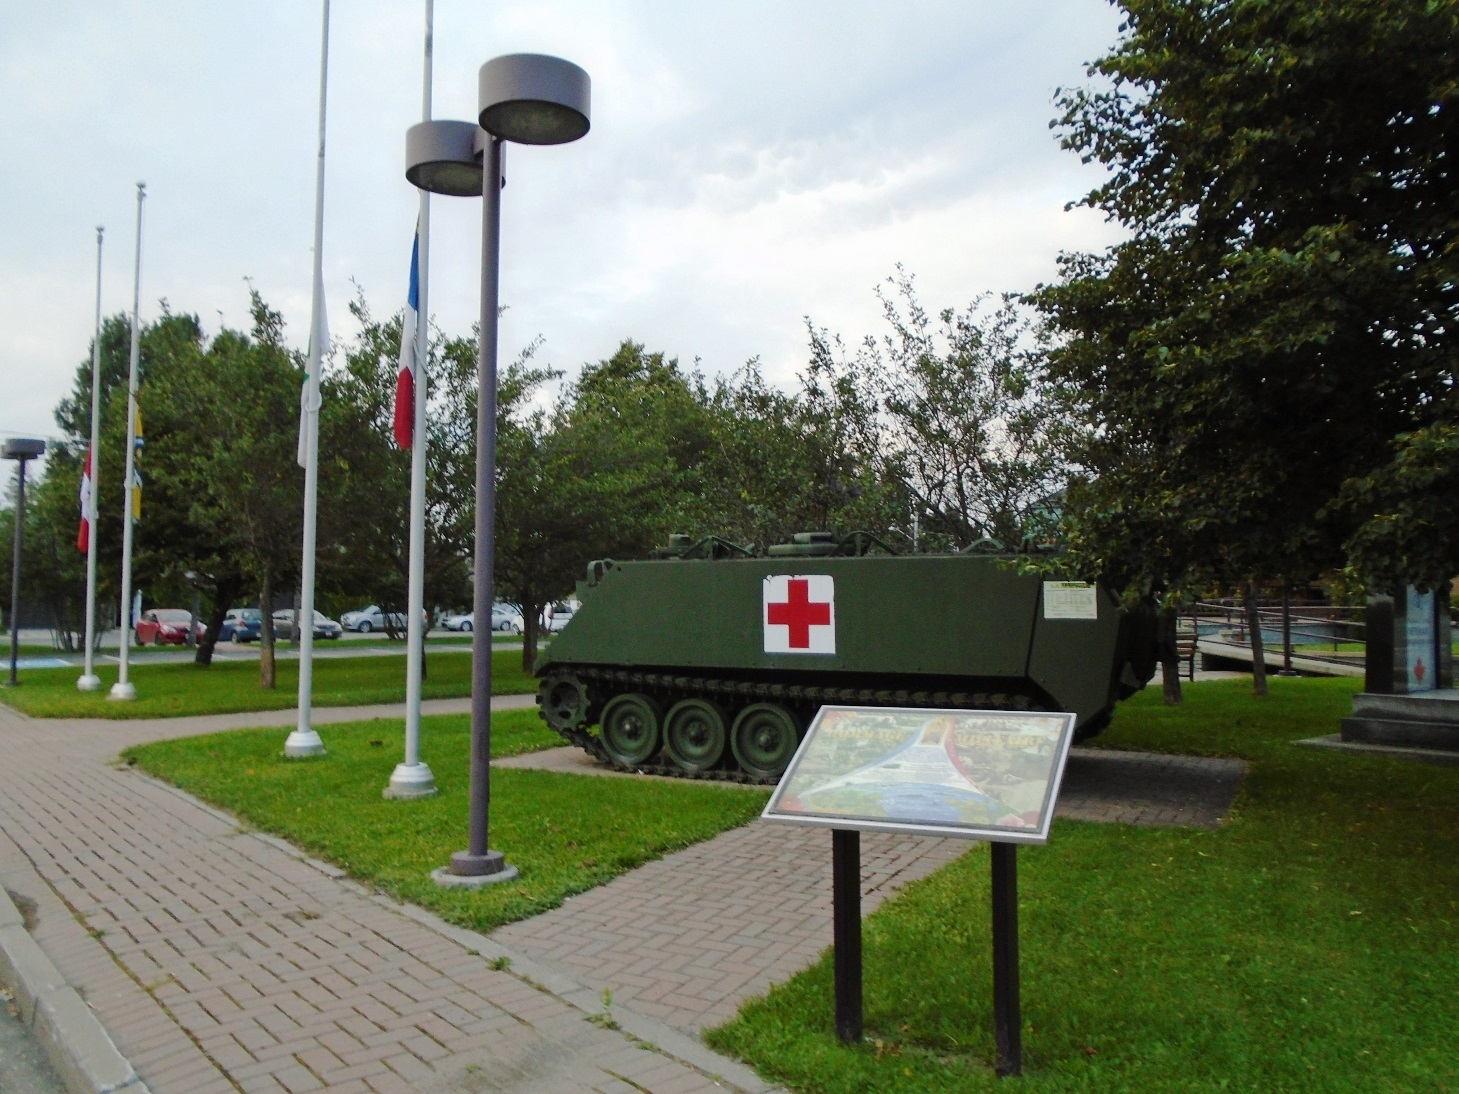 Saint-Quentin Hommage militaire / Military Tribute Marker